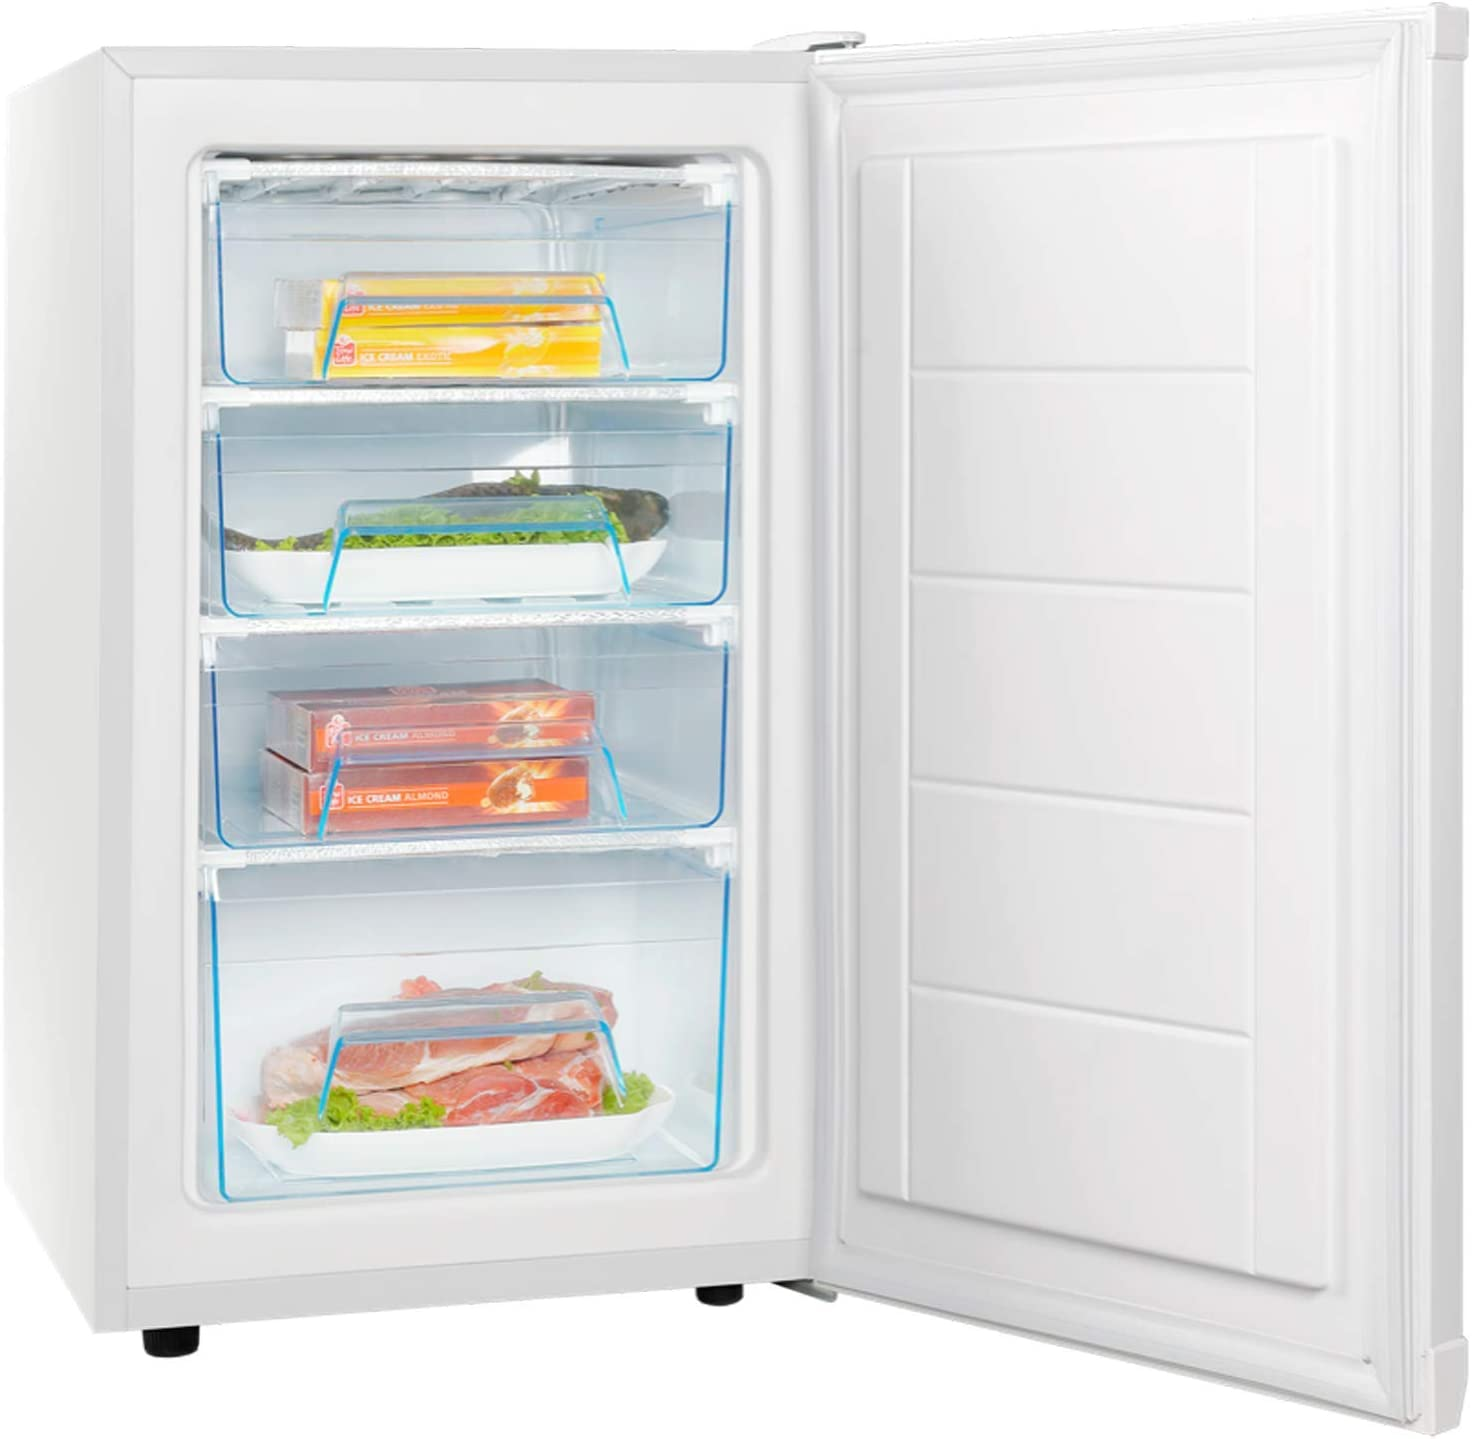 Energy Rating SIA UCF50WH 50cm White Freestanding Under Counter Freezer 80.5L A